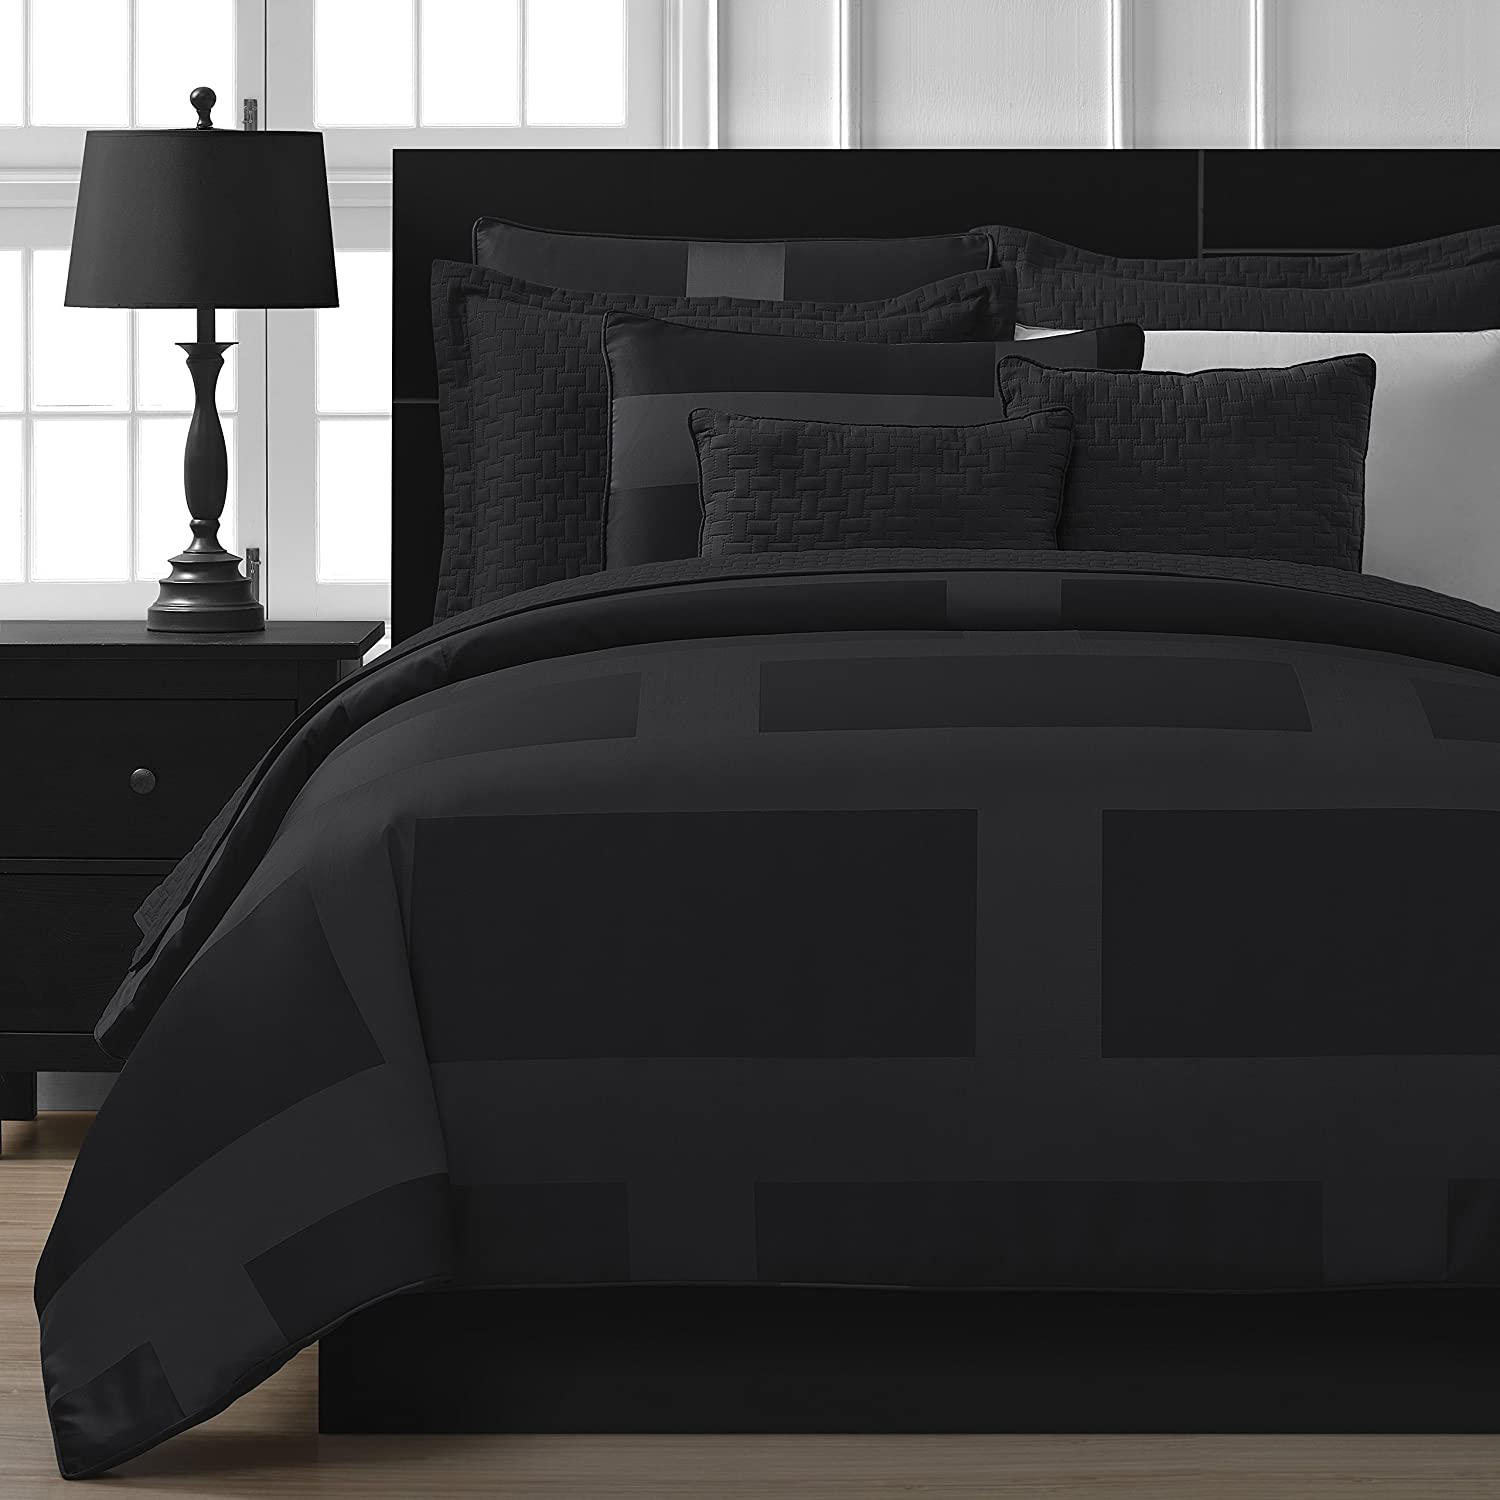 Comfy Bedding Frame Jacquard Microfiber 5-piece Comforter Set (King, Black)